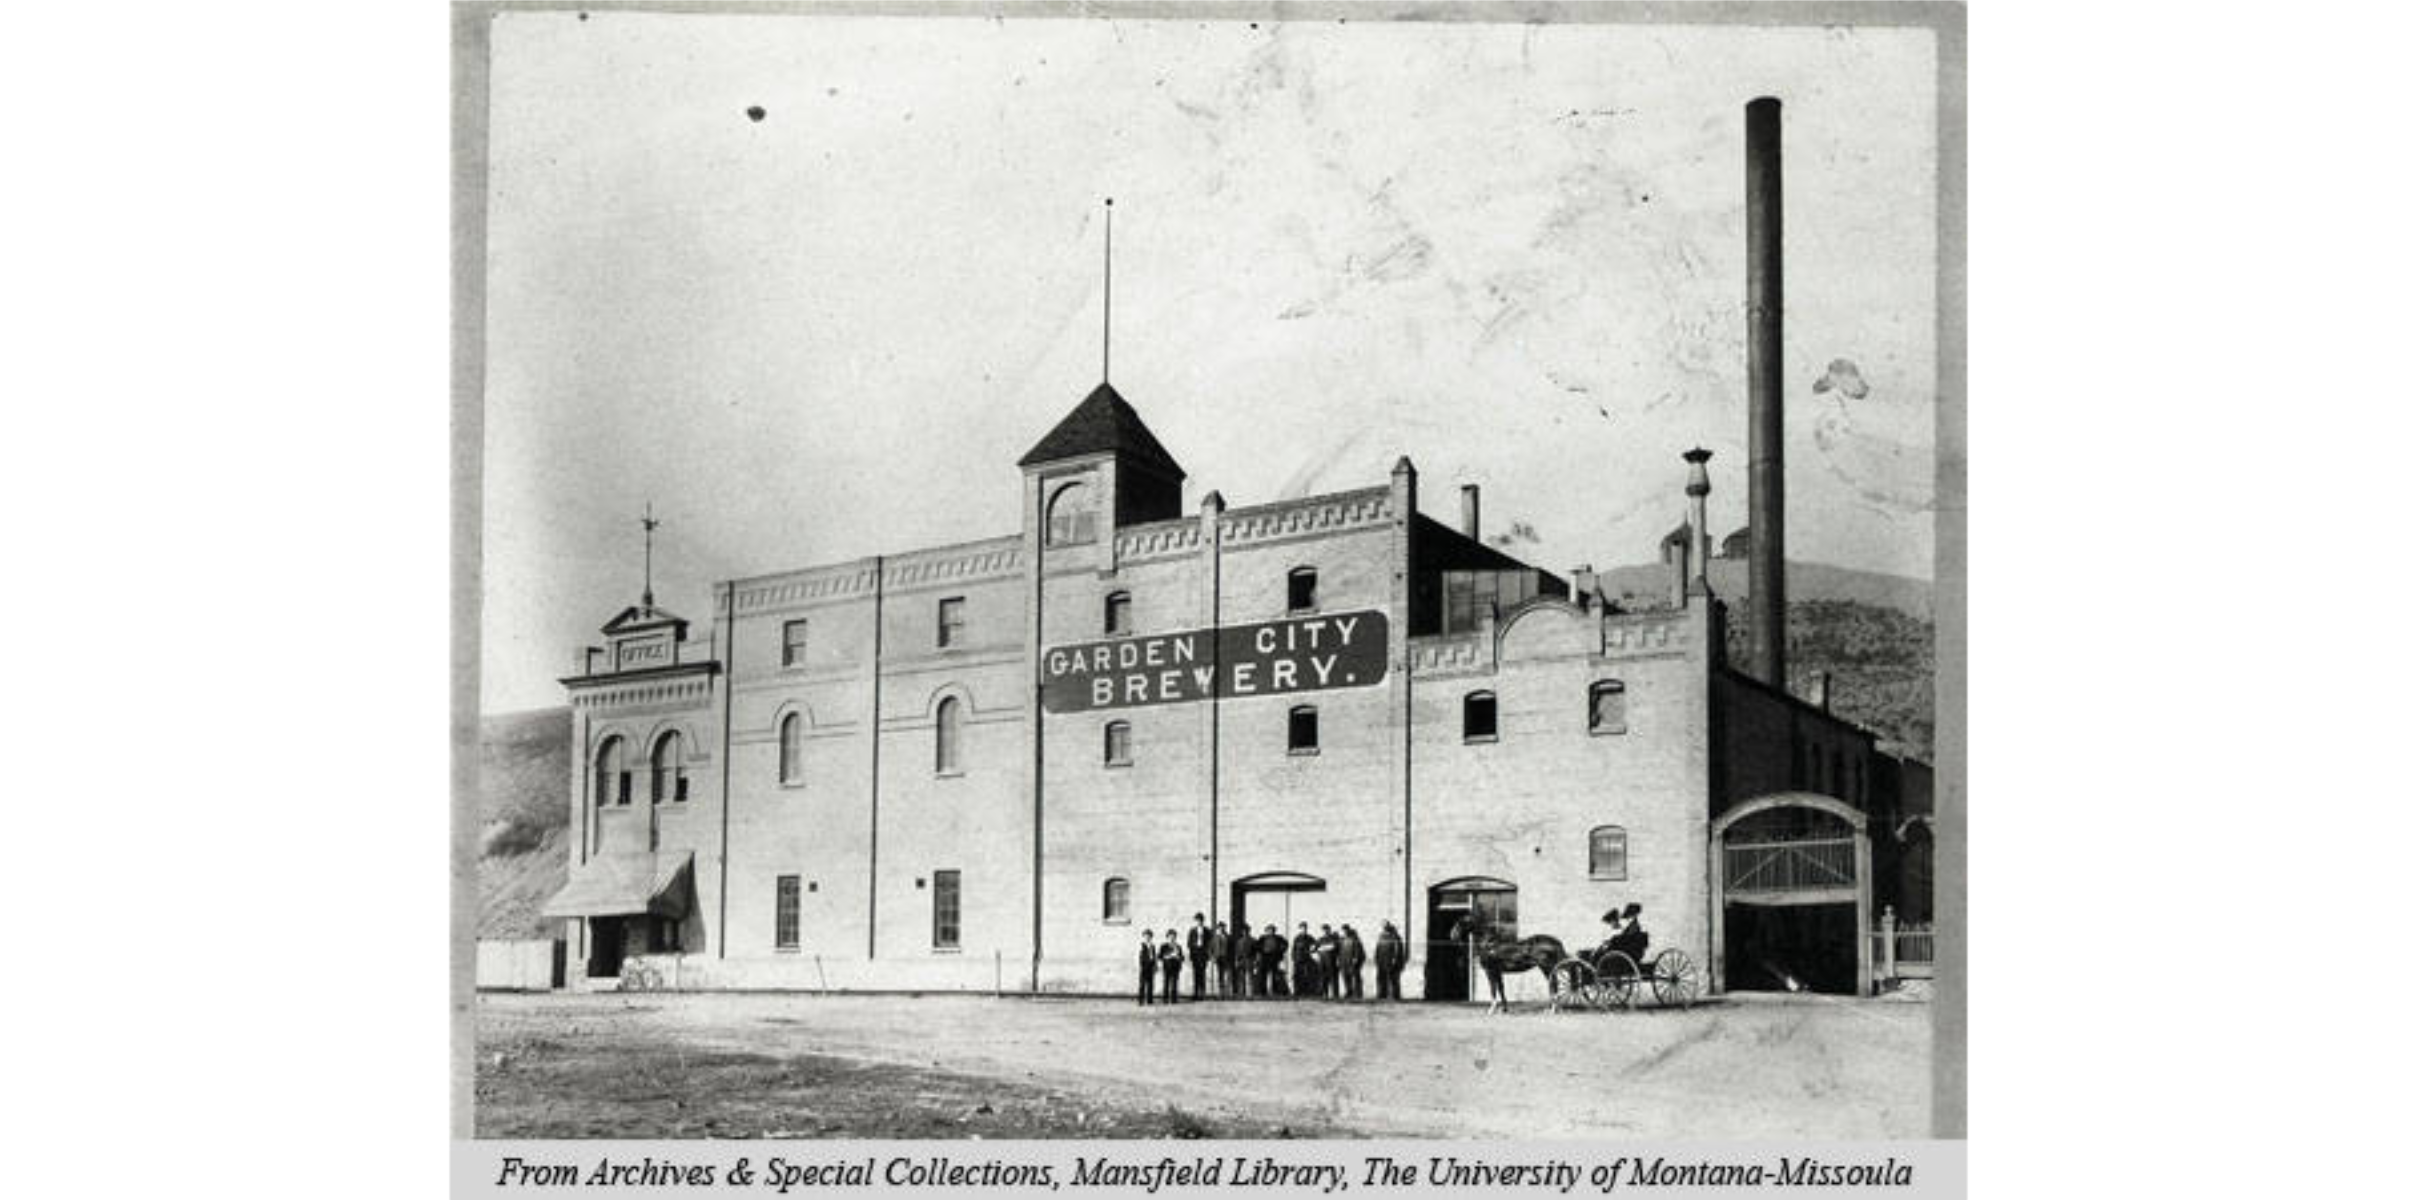 Garden City Brewery circa 1902